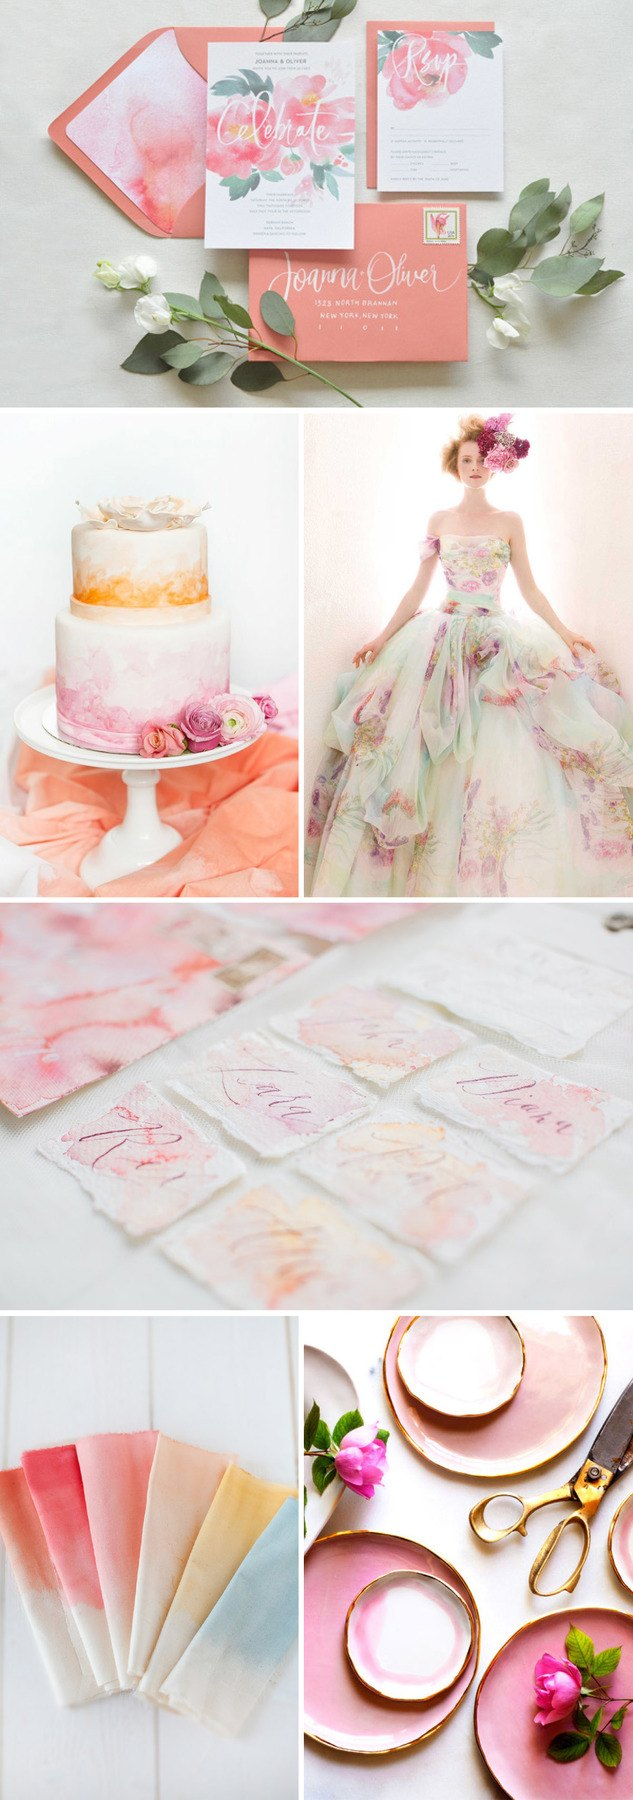 Nuage Designs Watercolor Wedding2